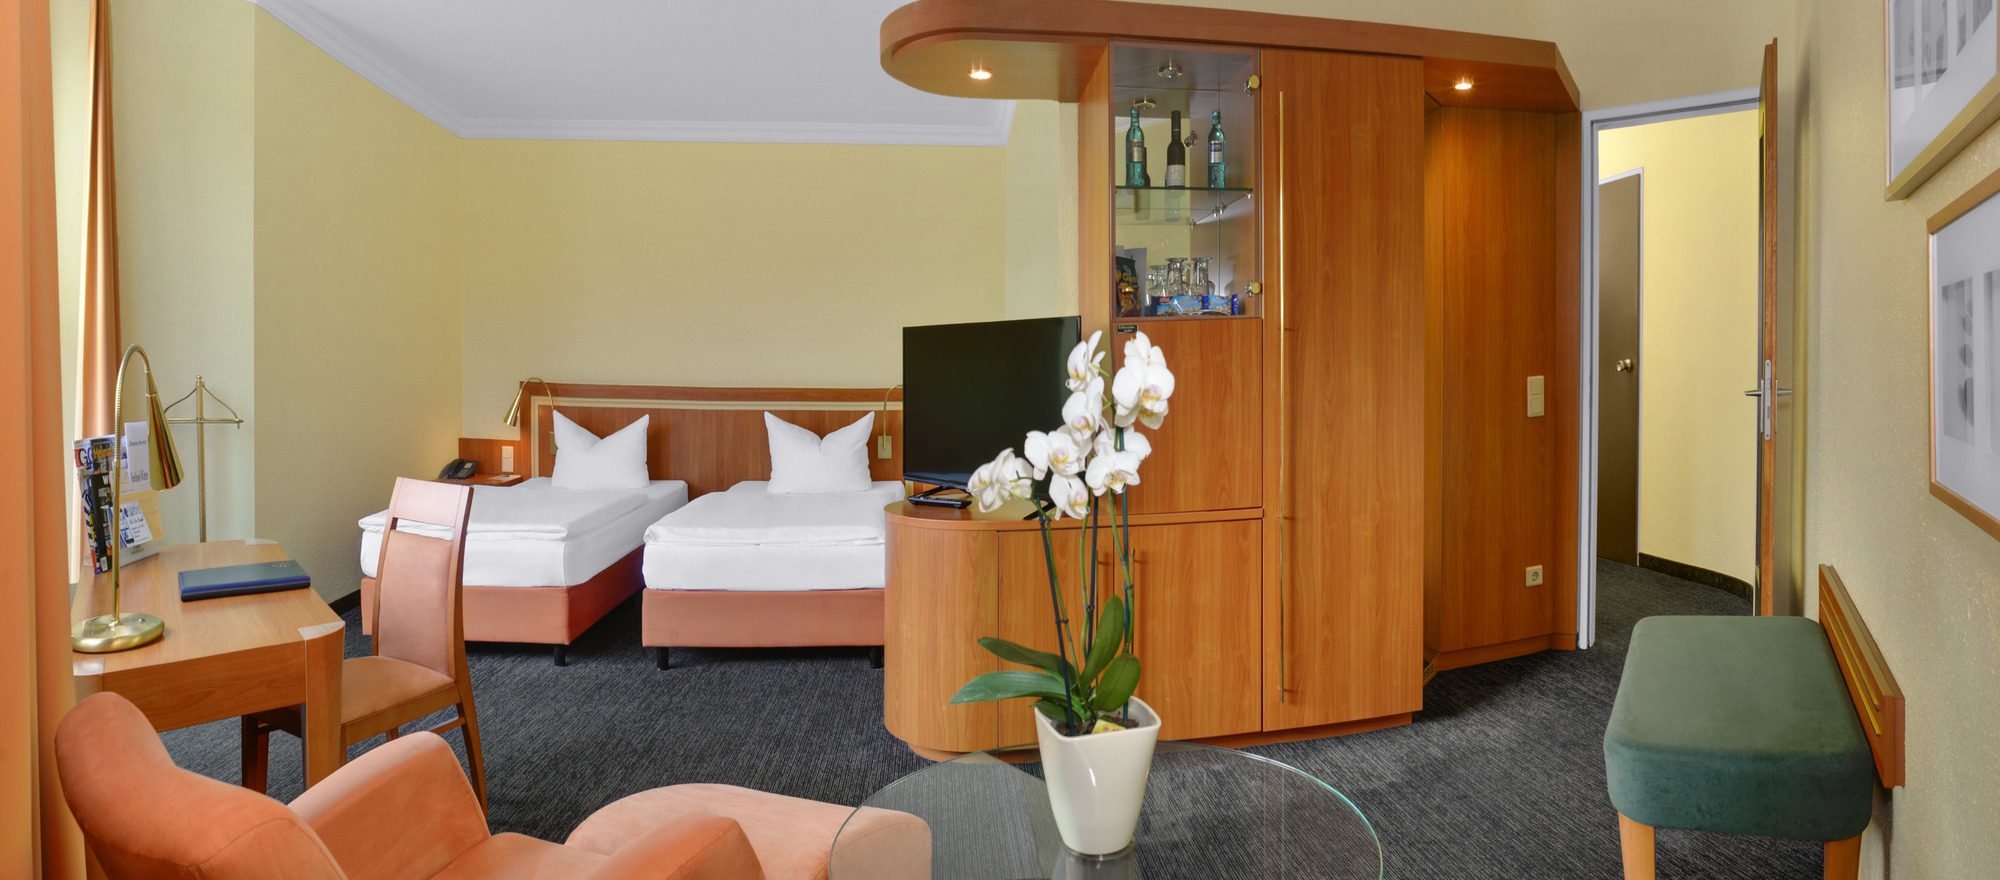 Spacious rooms with table, armchair and TV at the 3-star-superior hotel Ringhotel Parkhotel Witten in Witten